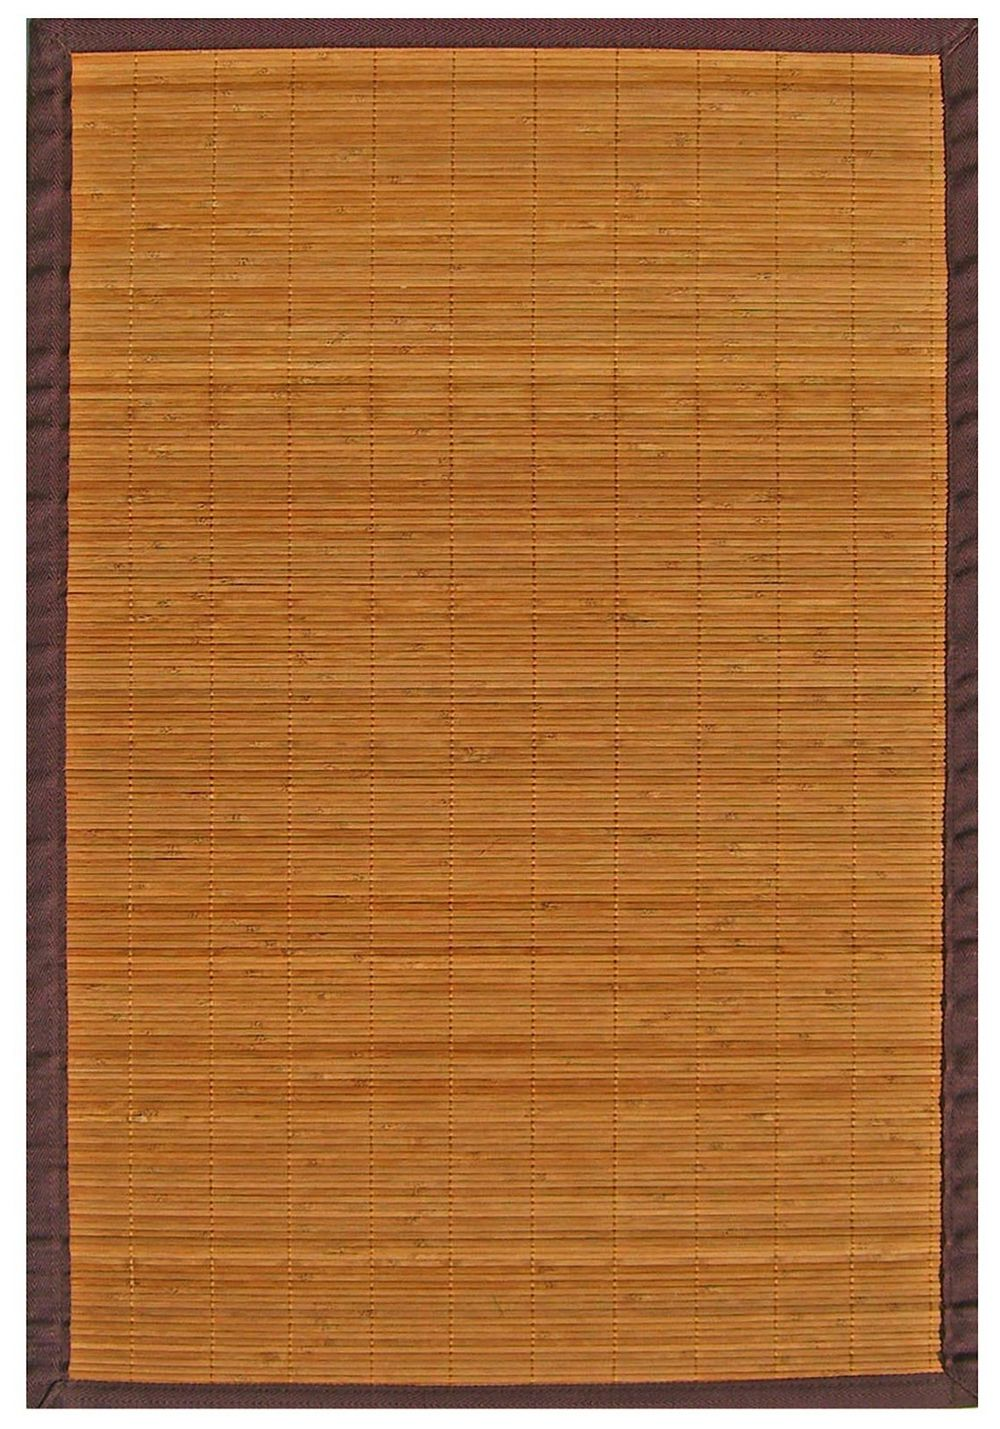 anji mountain villager bamboo area rug collection